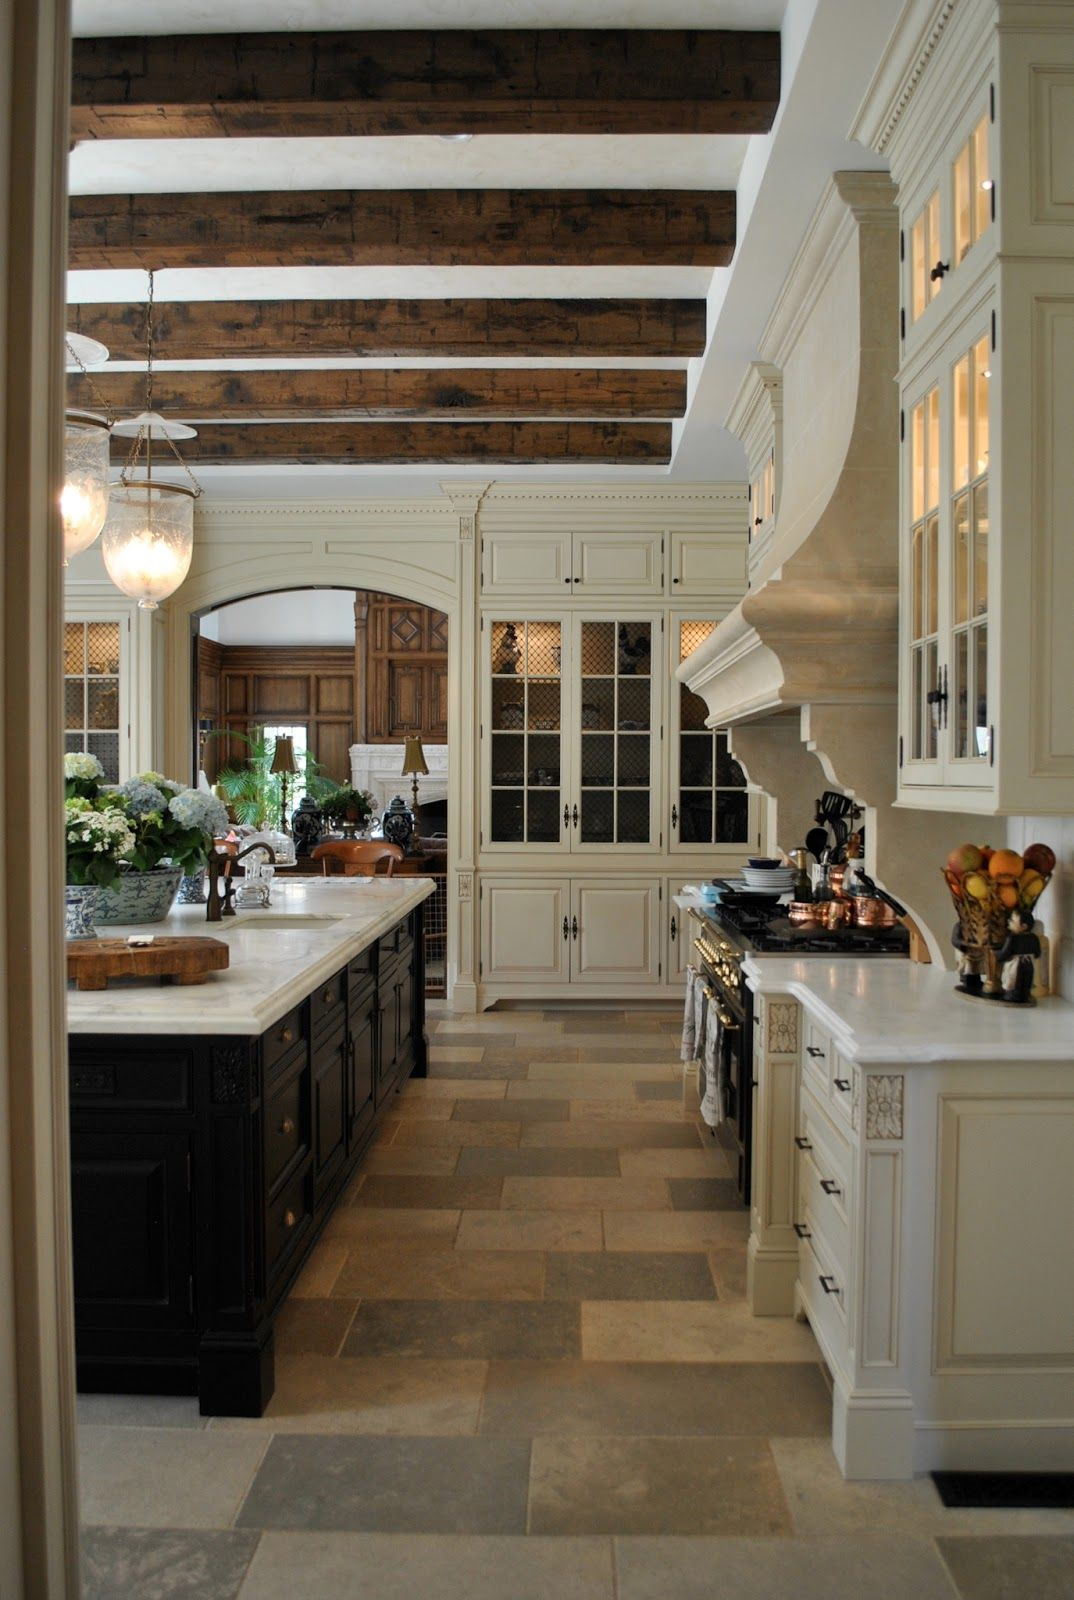 enchanting large kitchen idea | French Country Kitchen Decor Ideas Inspired by The ...